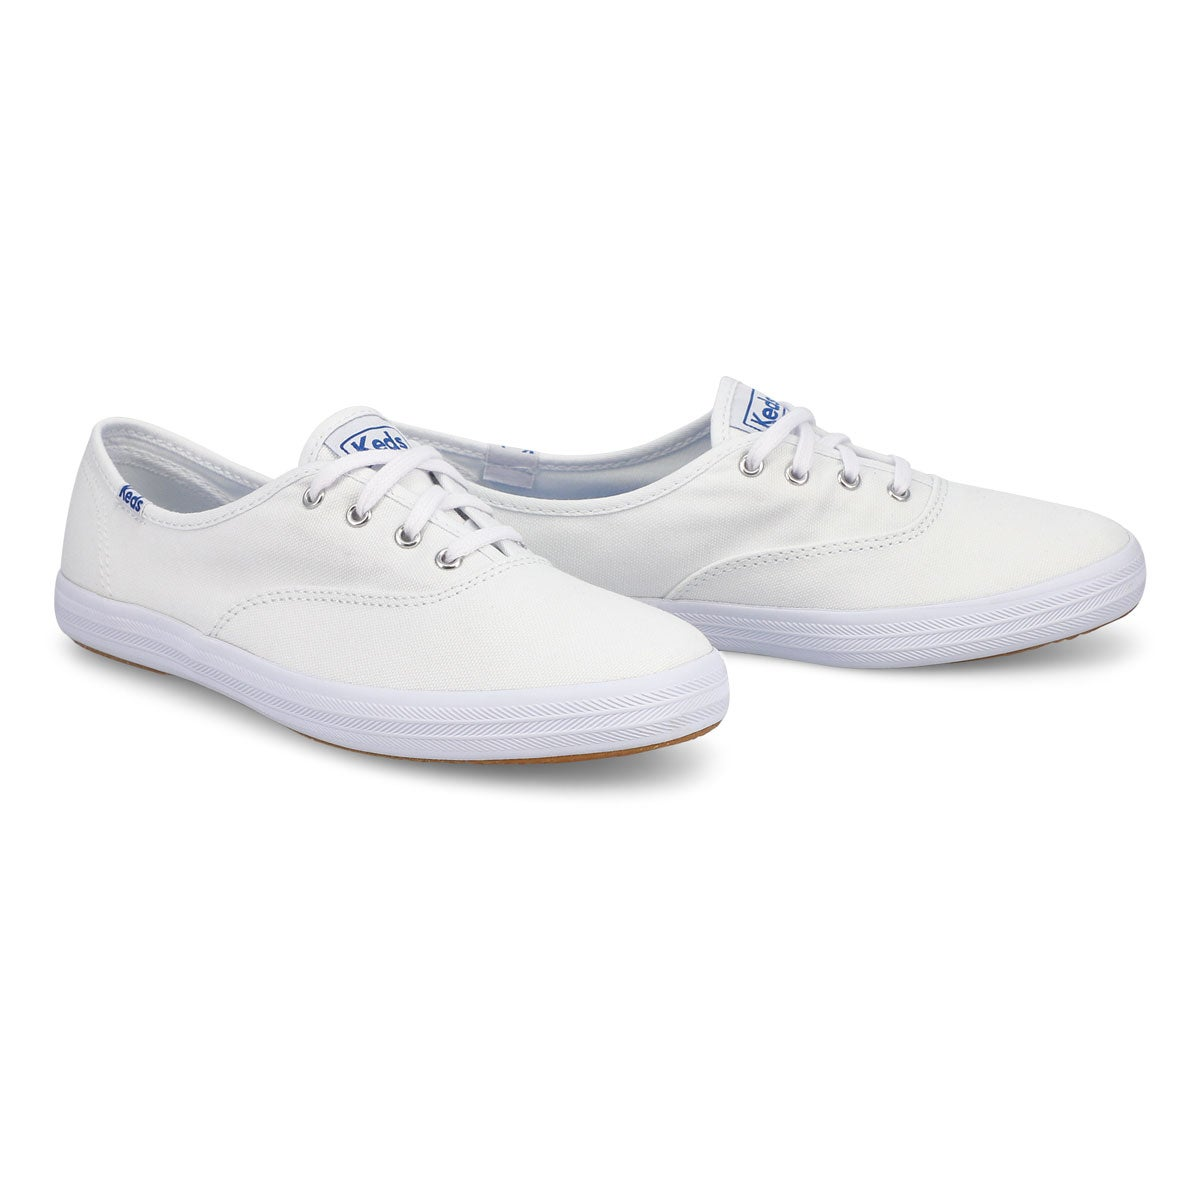 Lds Champion white canvas CVO sneaker